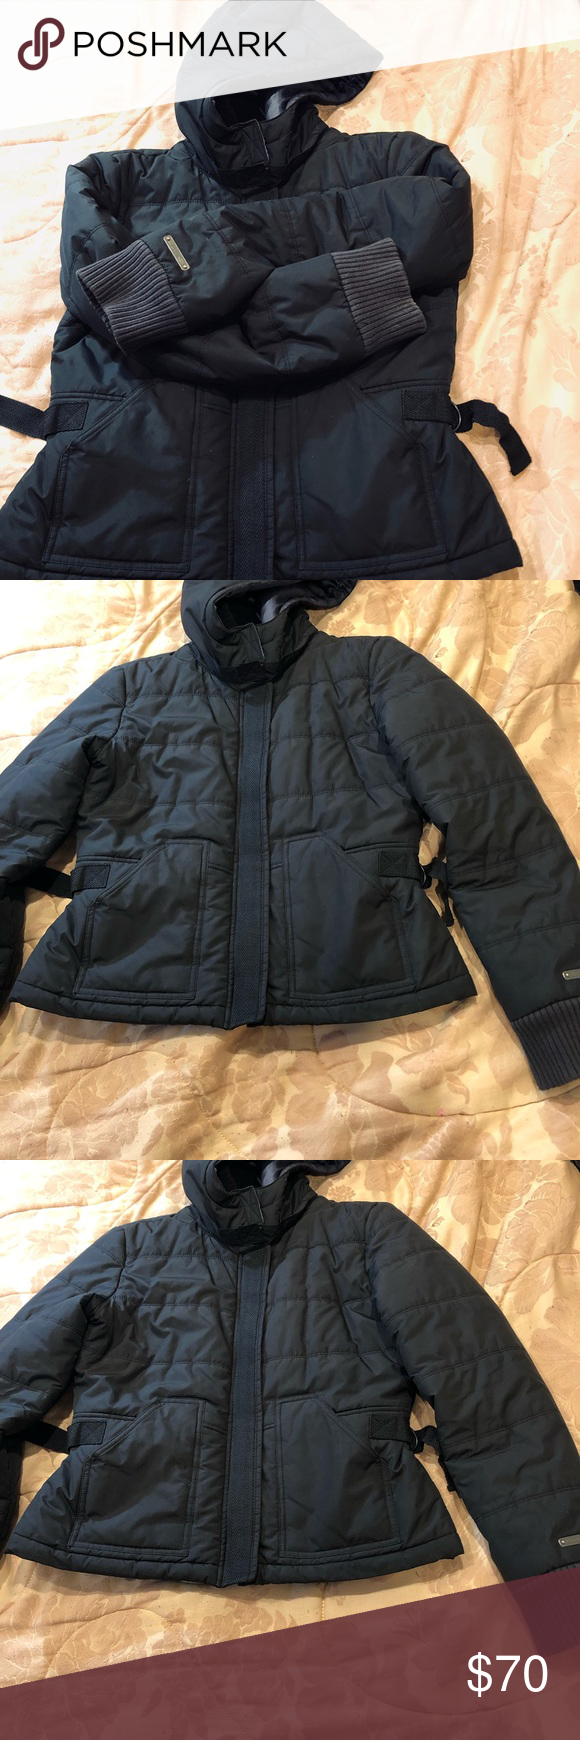 Rare Dkny Active Puffer Down Hooded Black Jacket Black Jacket Coats Jackets Women Jackets [ 1740 x 580 Pixel ]